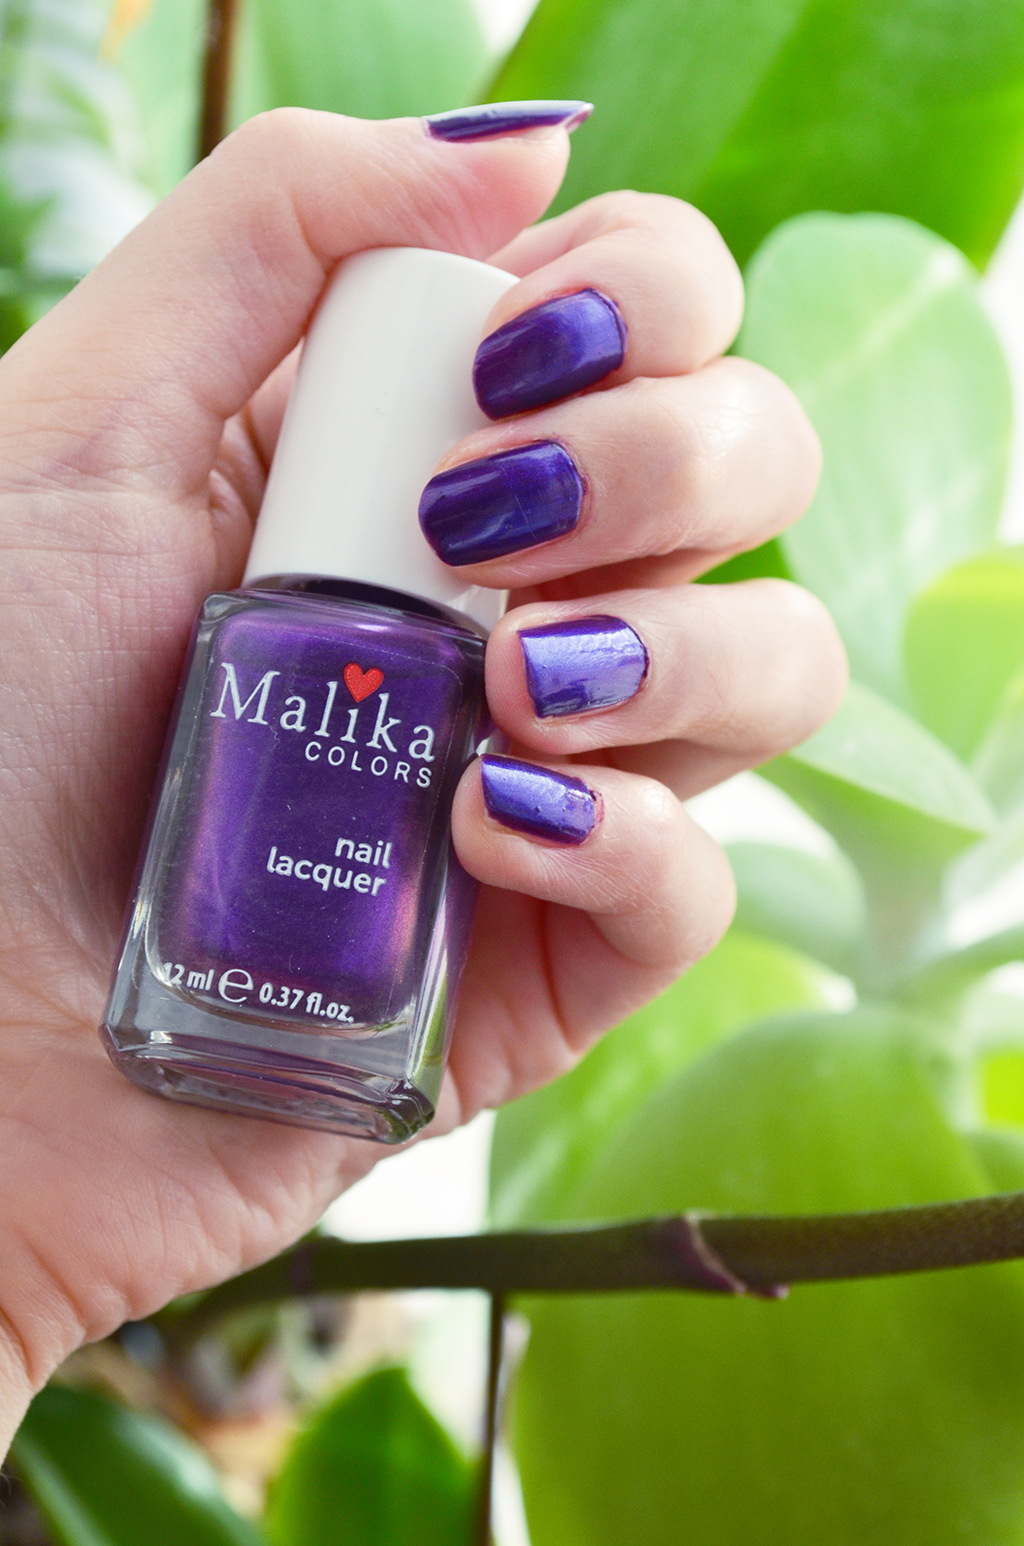 malika colors nailpolish oja pantone color ultraviolet 2018